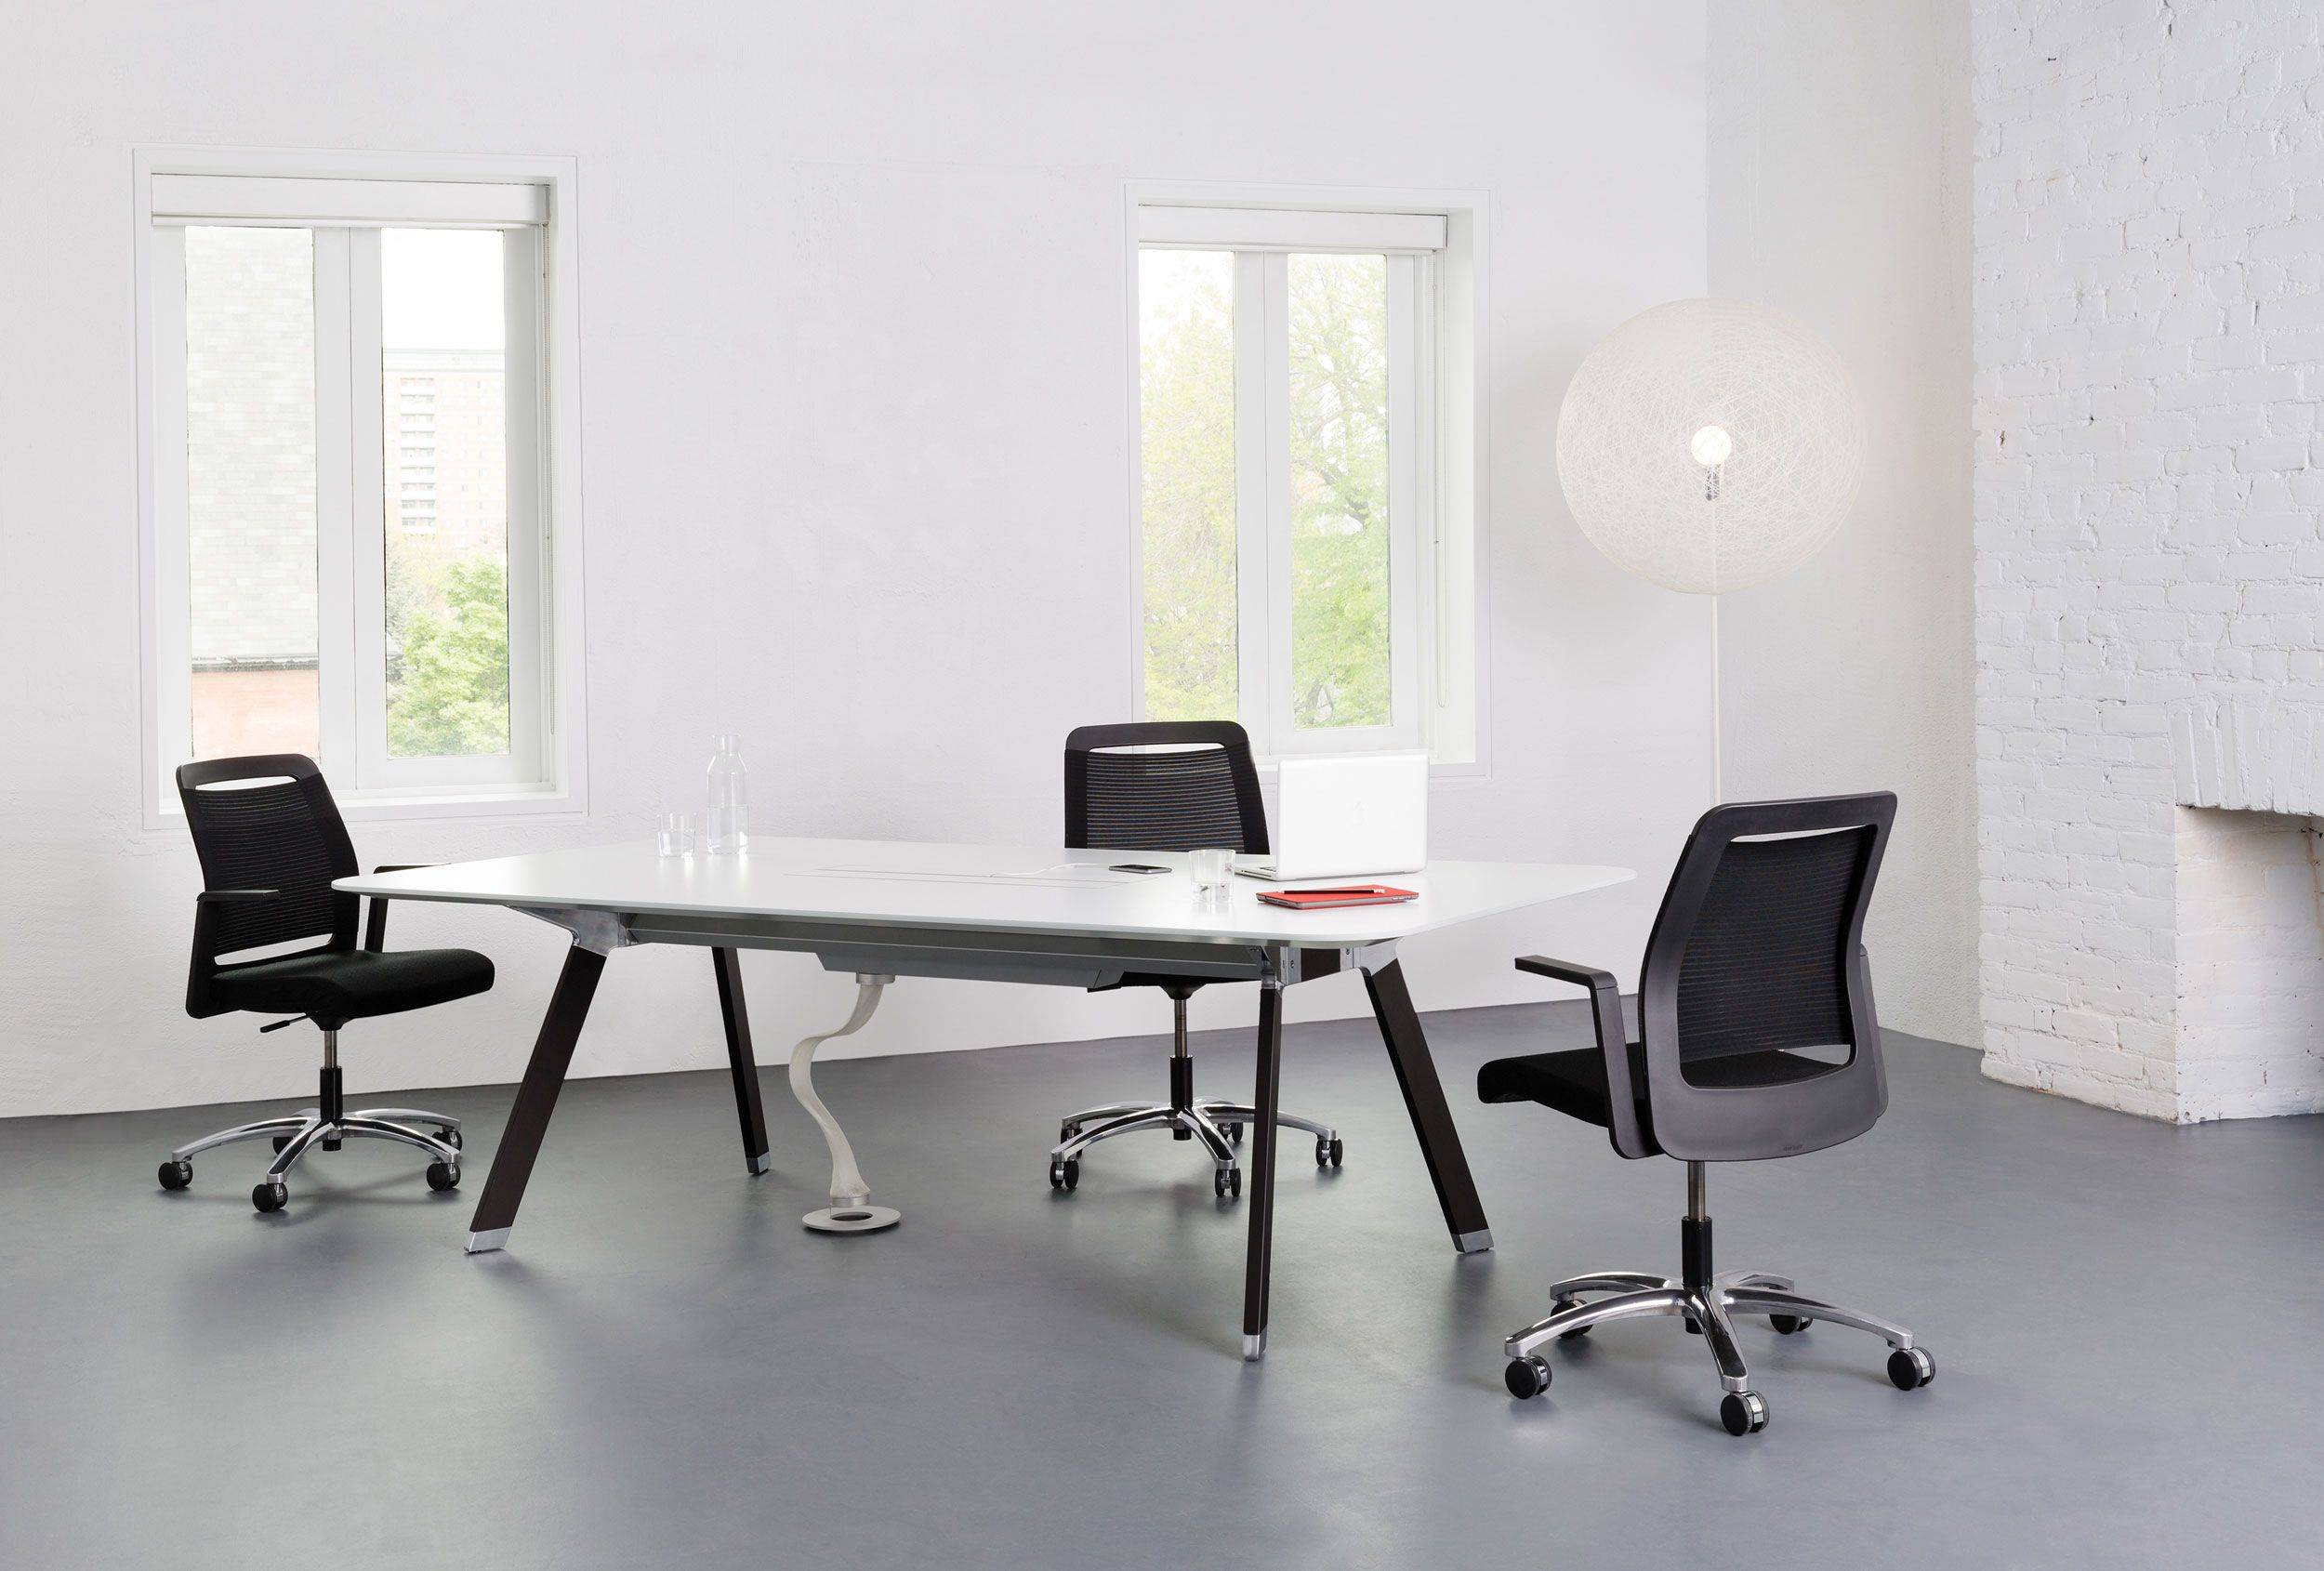 For The Executive Who Holds Frequent Meetings And Needs Ample